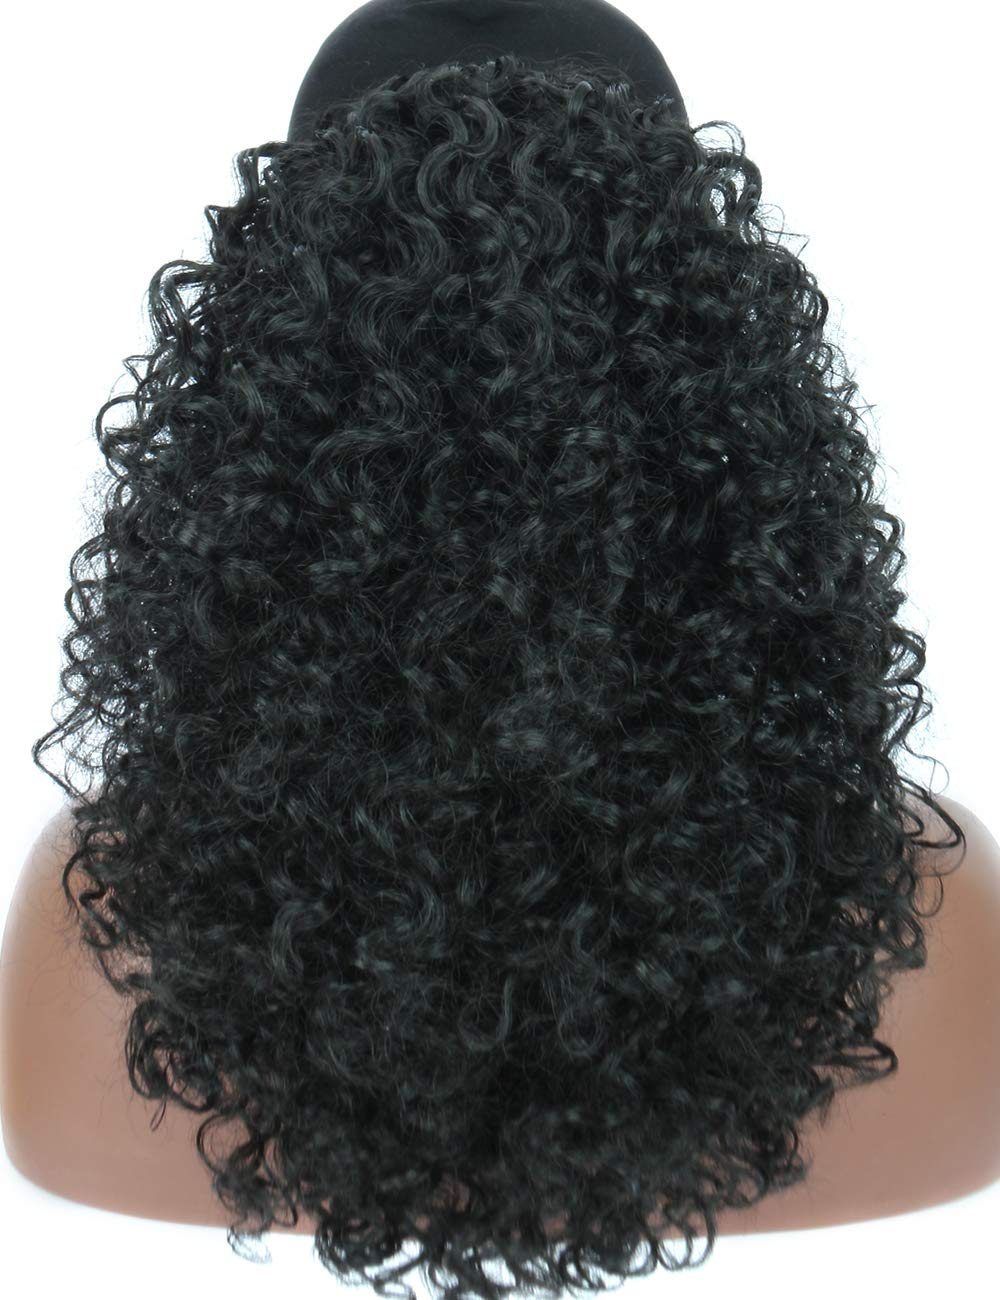 Kalyss Long Lightweight Black Synthetic Kinky Max 66% OFF Loose Curly Hair In a popularity E